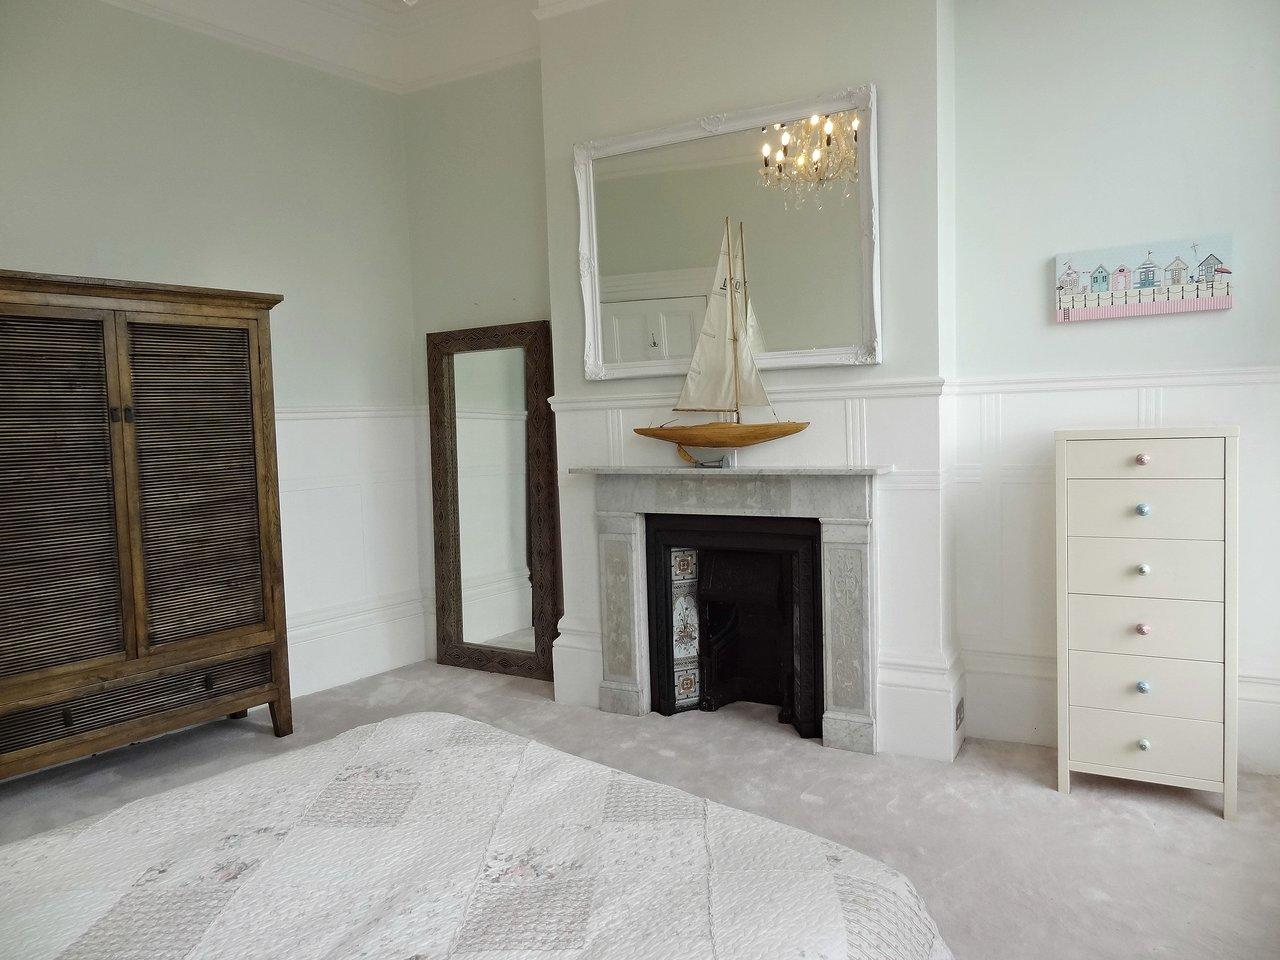 The Grand Seafront Apartment, Brighton & Hove Images - 22